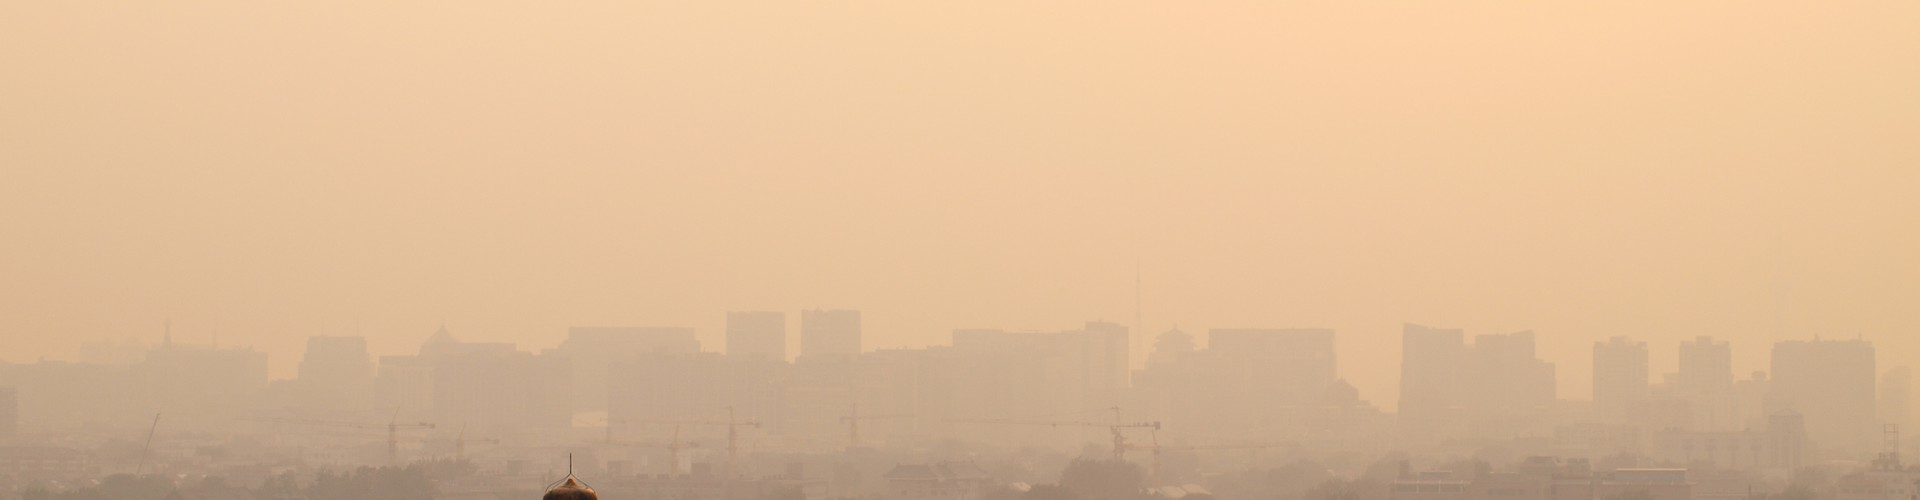 Hazy sunset over Beijing, one of the world's most polluted cities. (Credit: Michelle Cain, distributed via imaggeo.egu.eu)